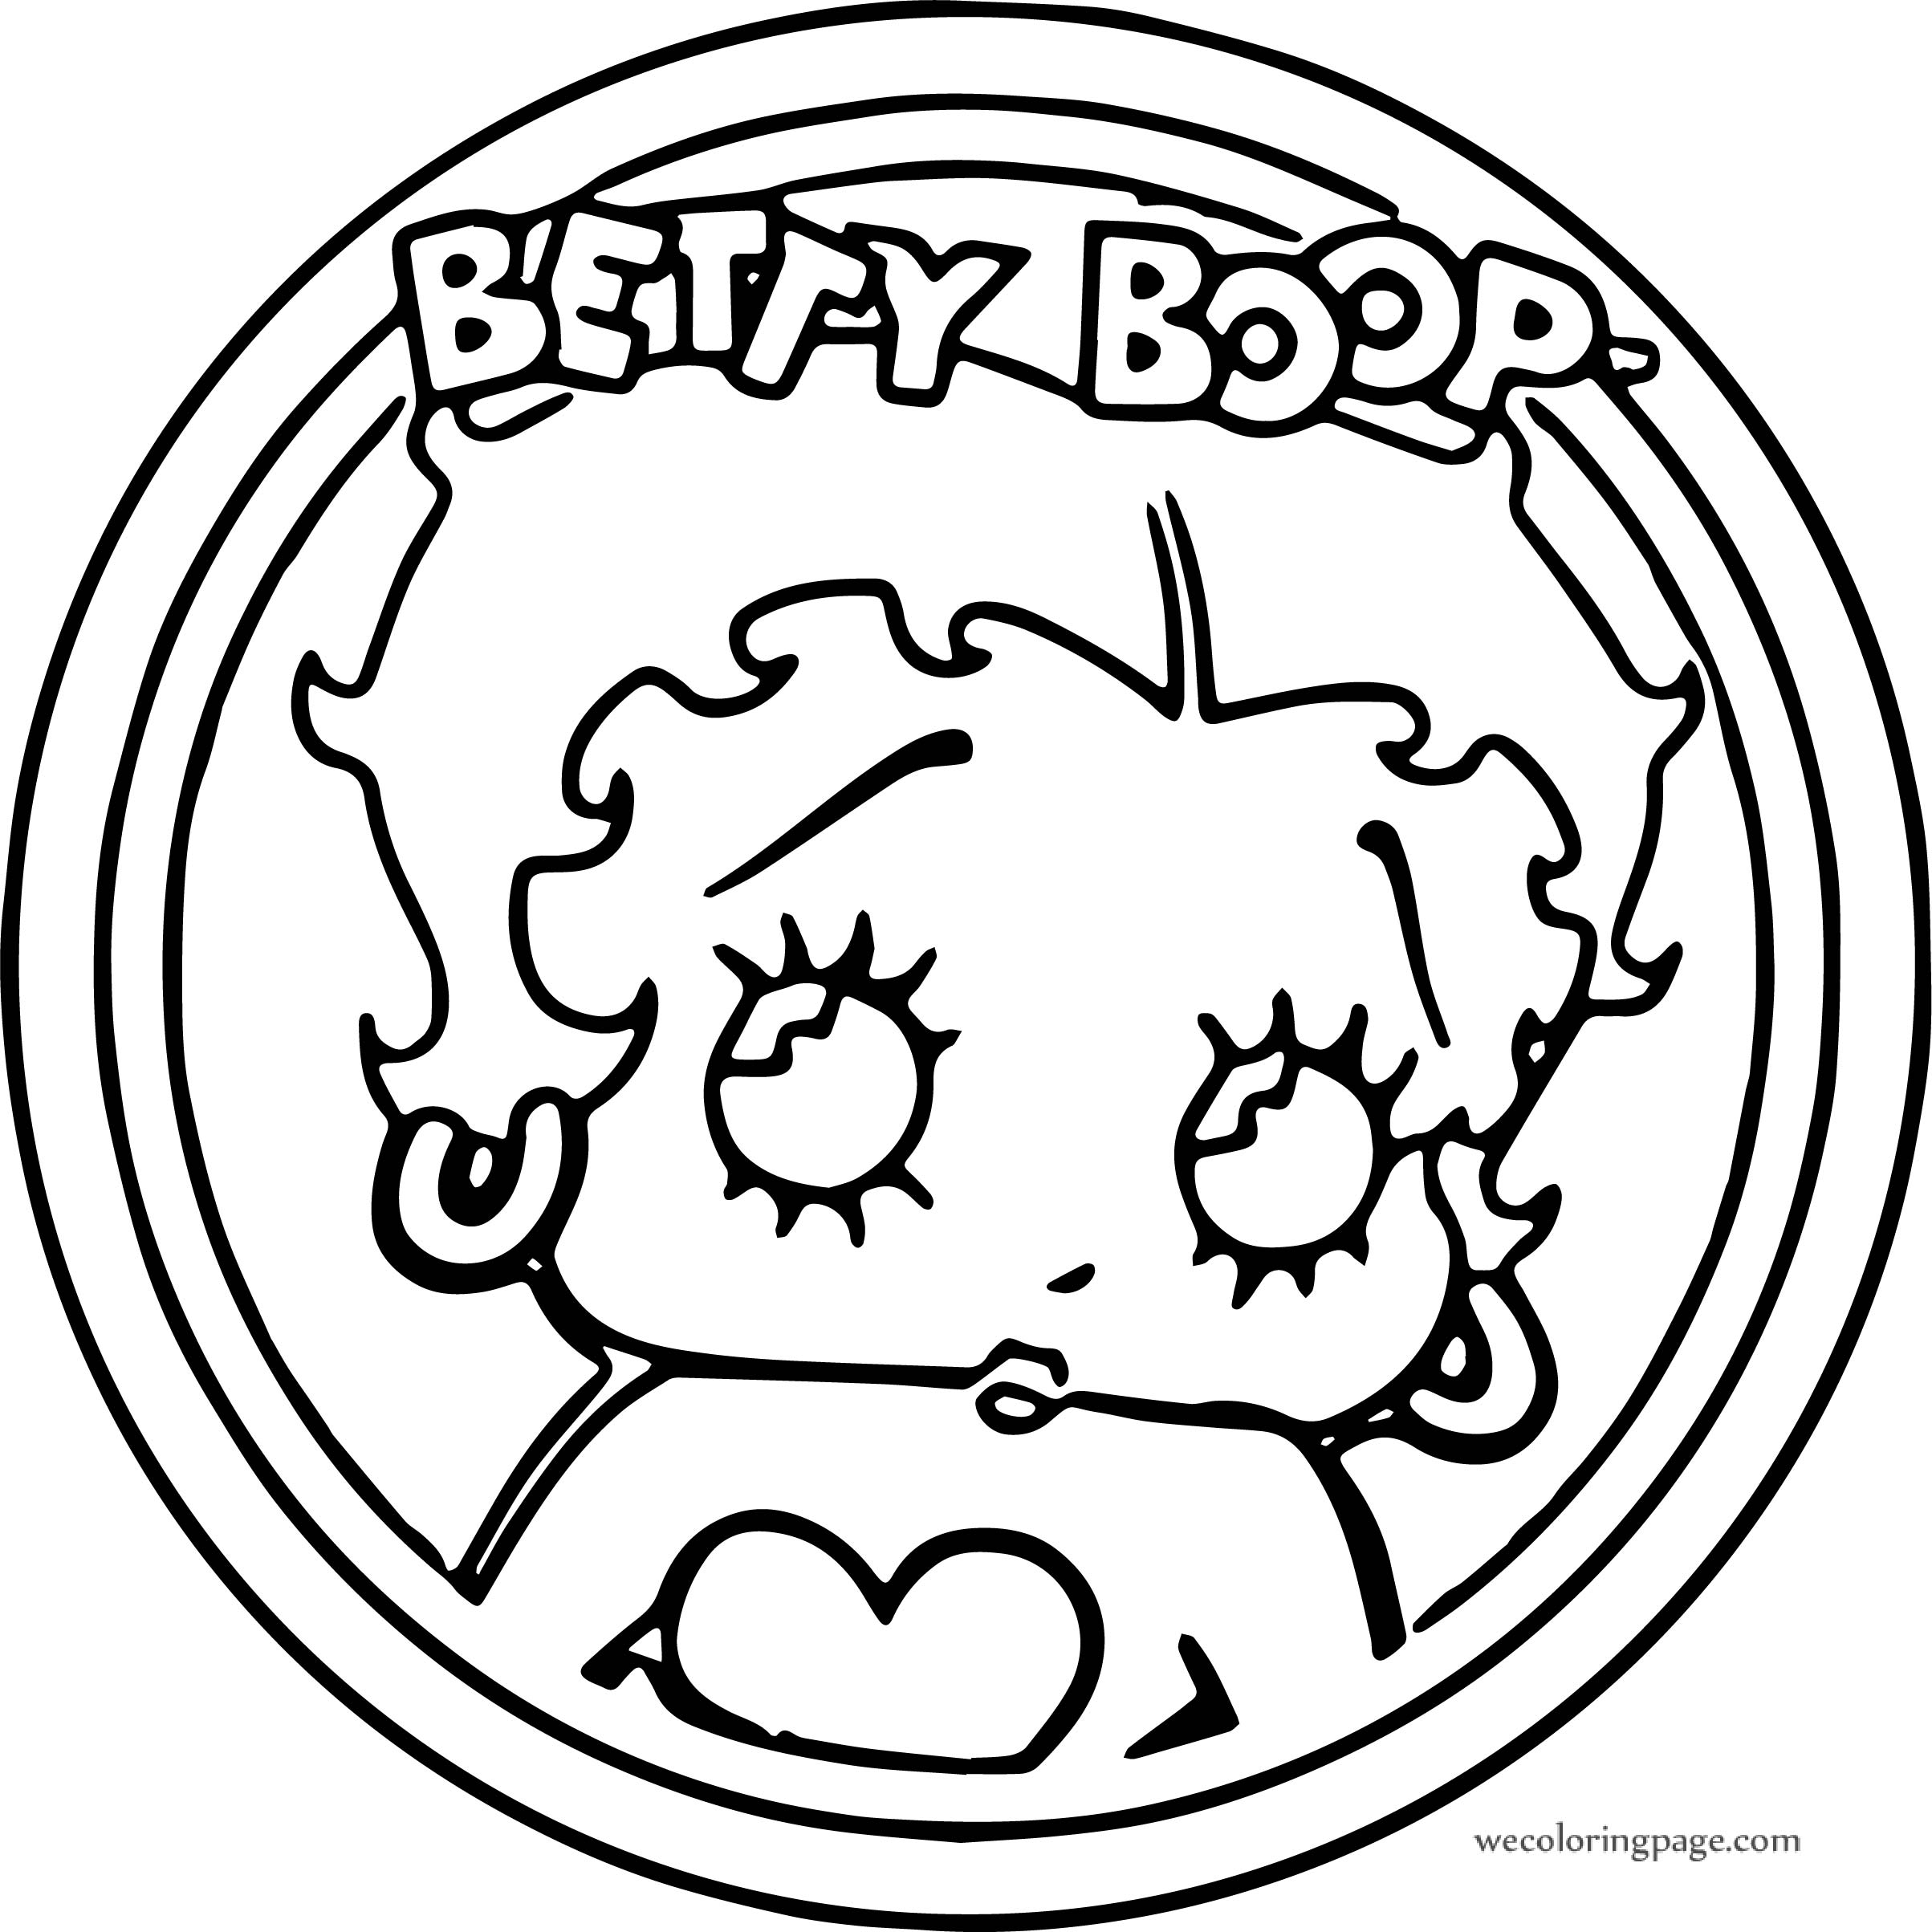 Betty Boop Circle Coloring Pages